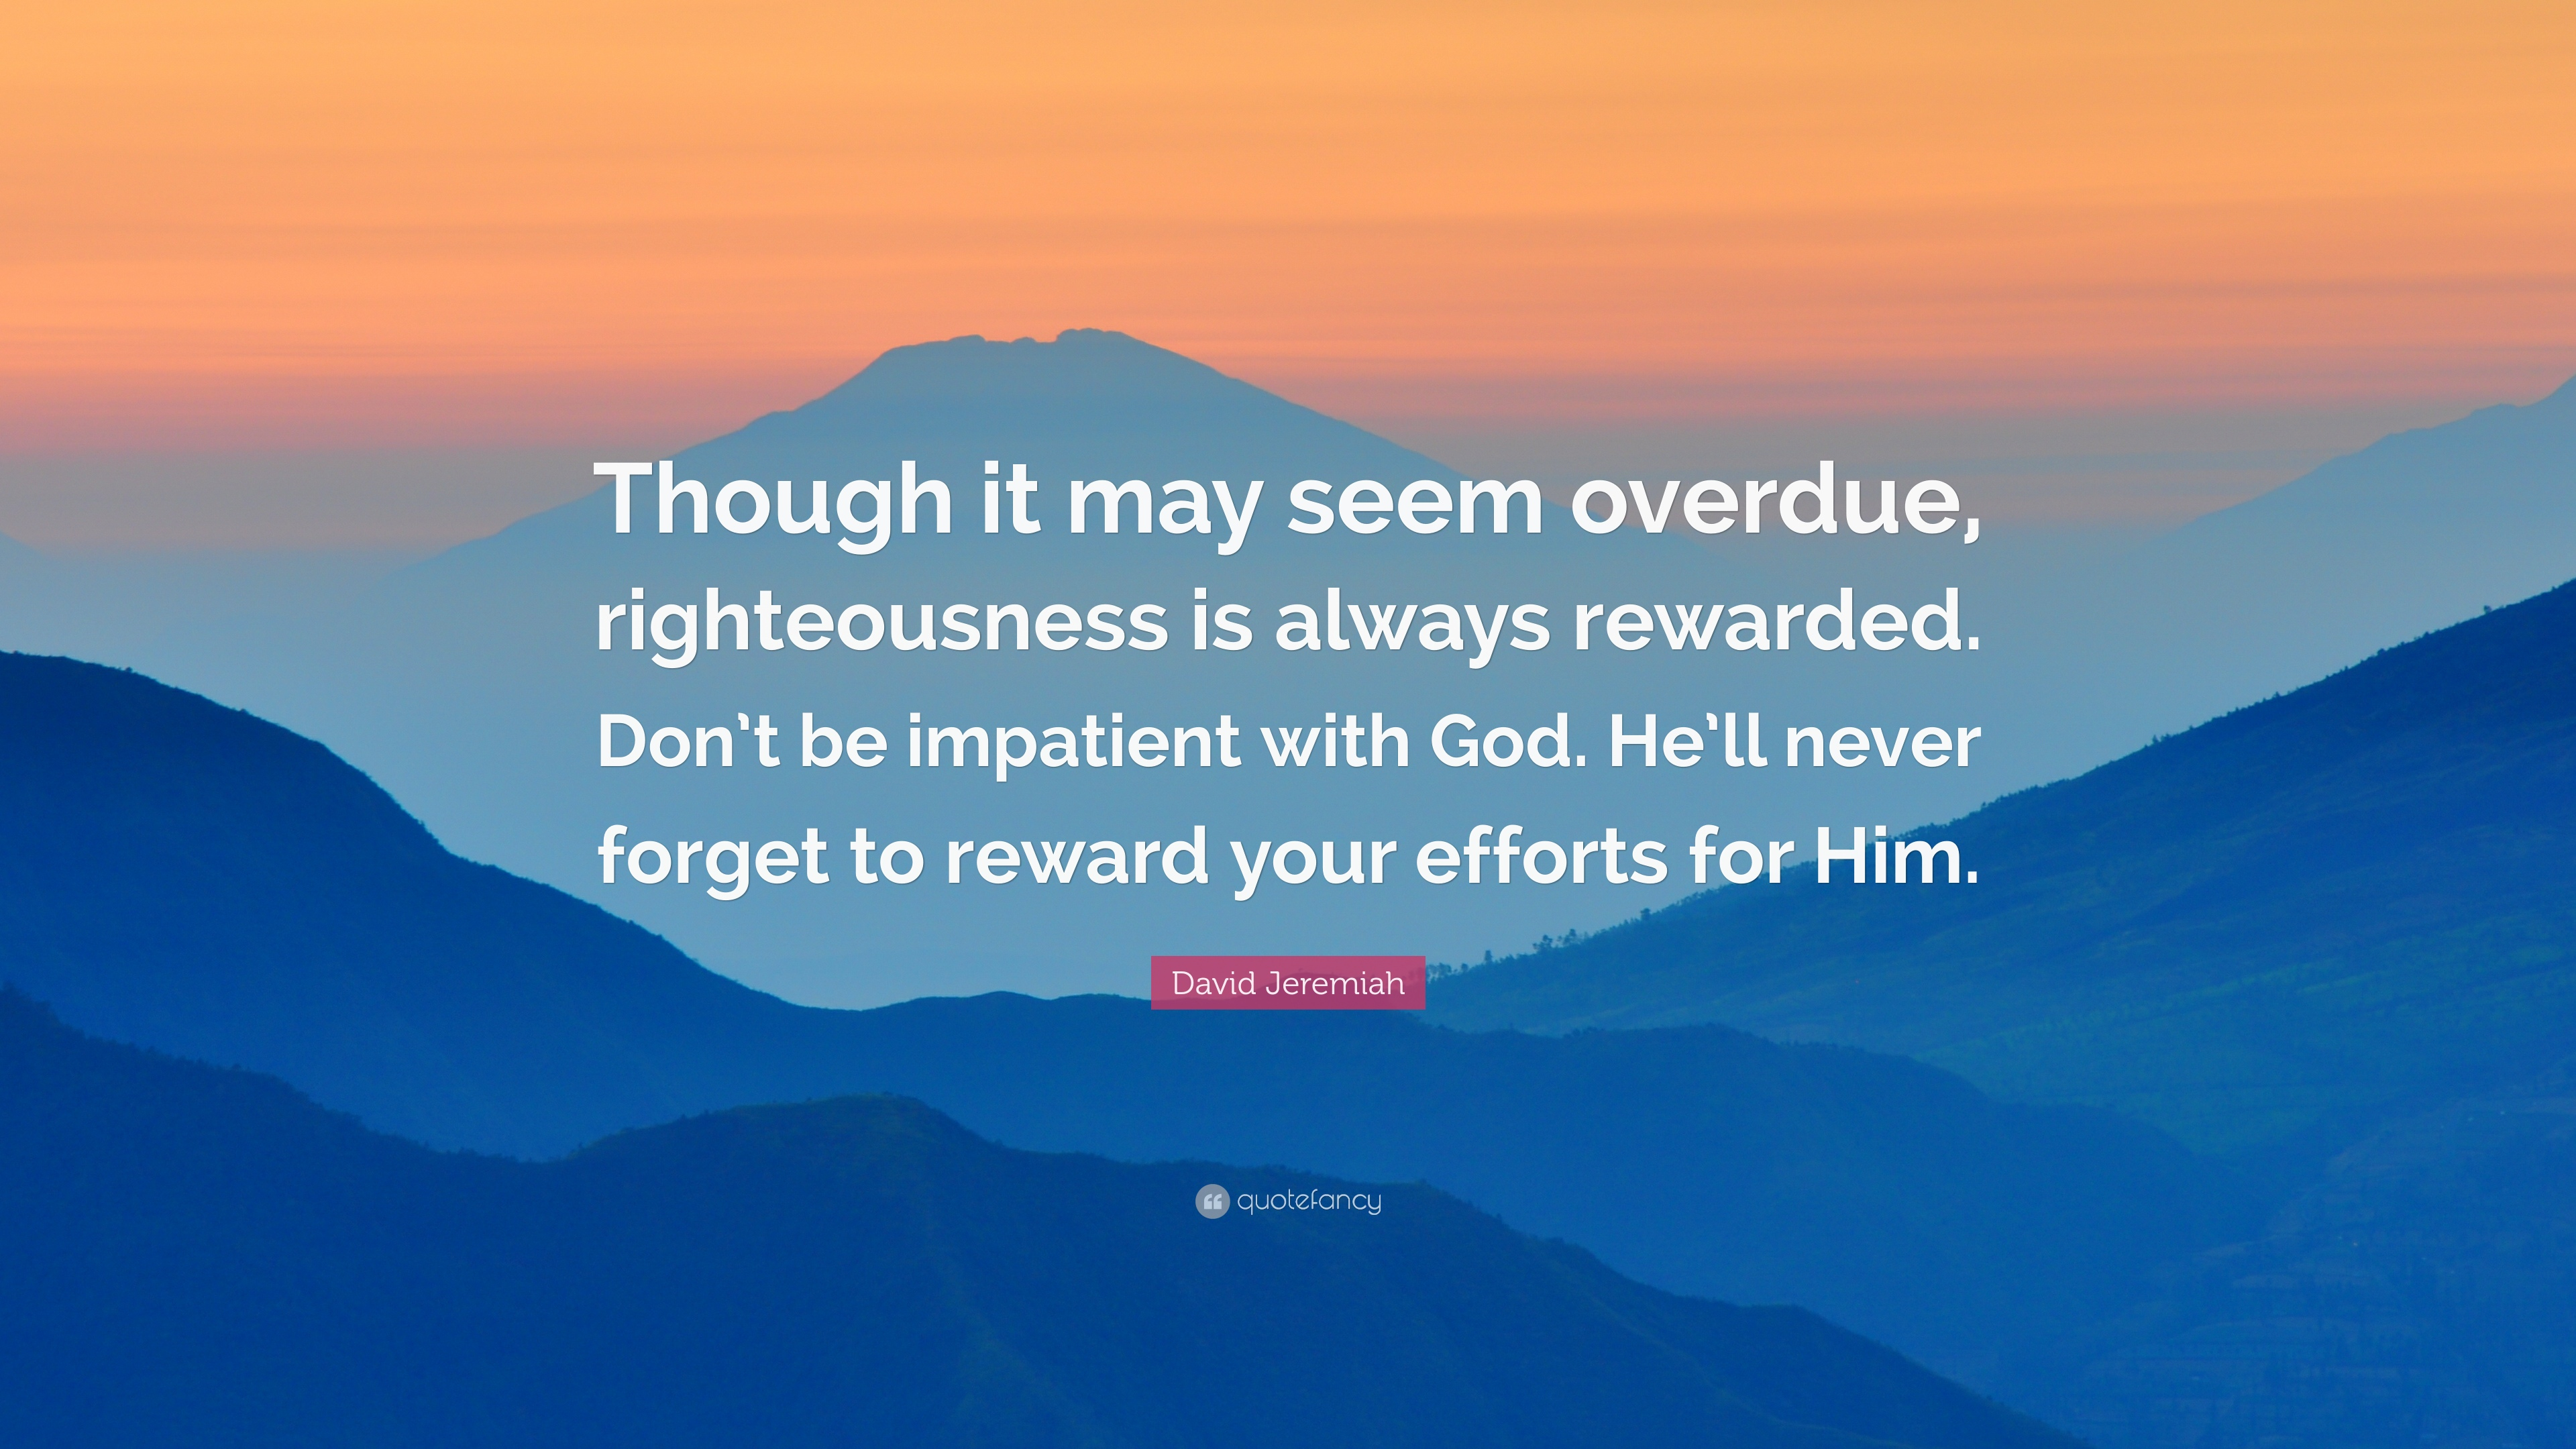 Good David Jeremiah Quote: U201cThough It May Seem Overdue, Righteousness Is Always  Rewarded.